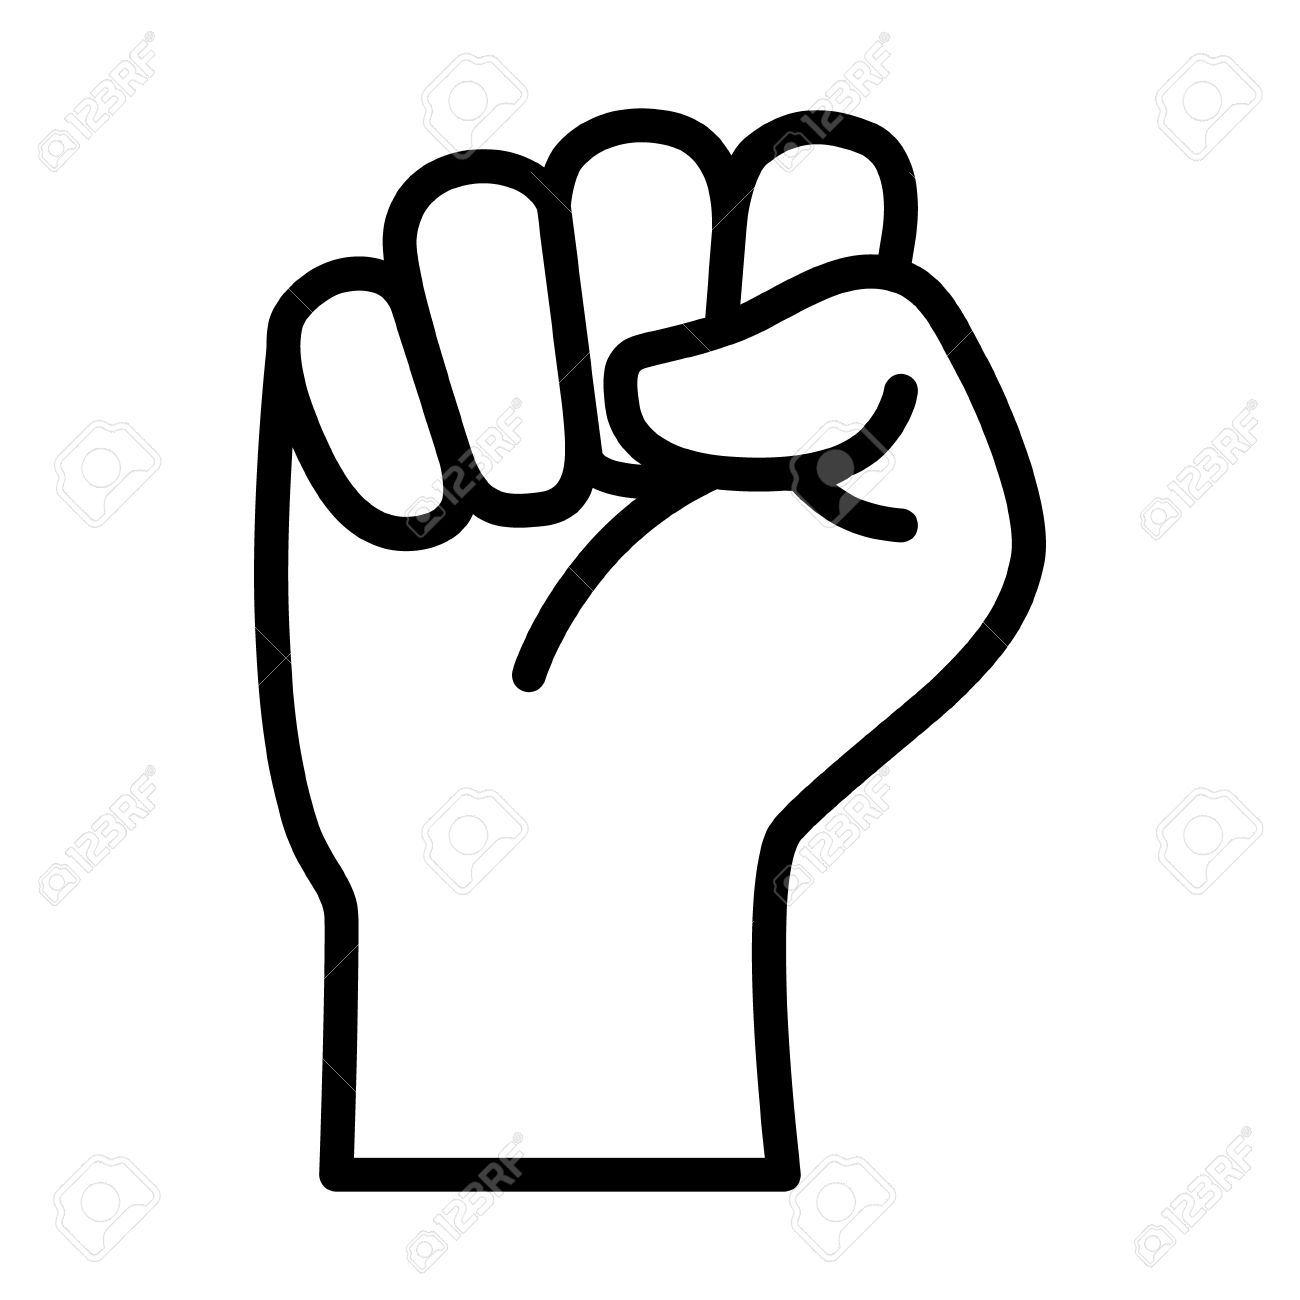 Raised Fist - Symbol Of Victory, Strength, Power And Solidarity ...